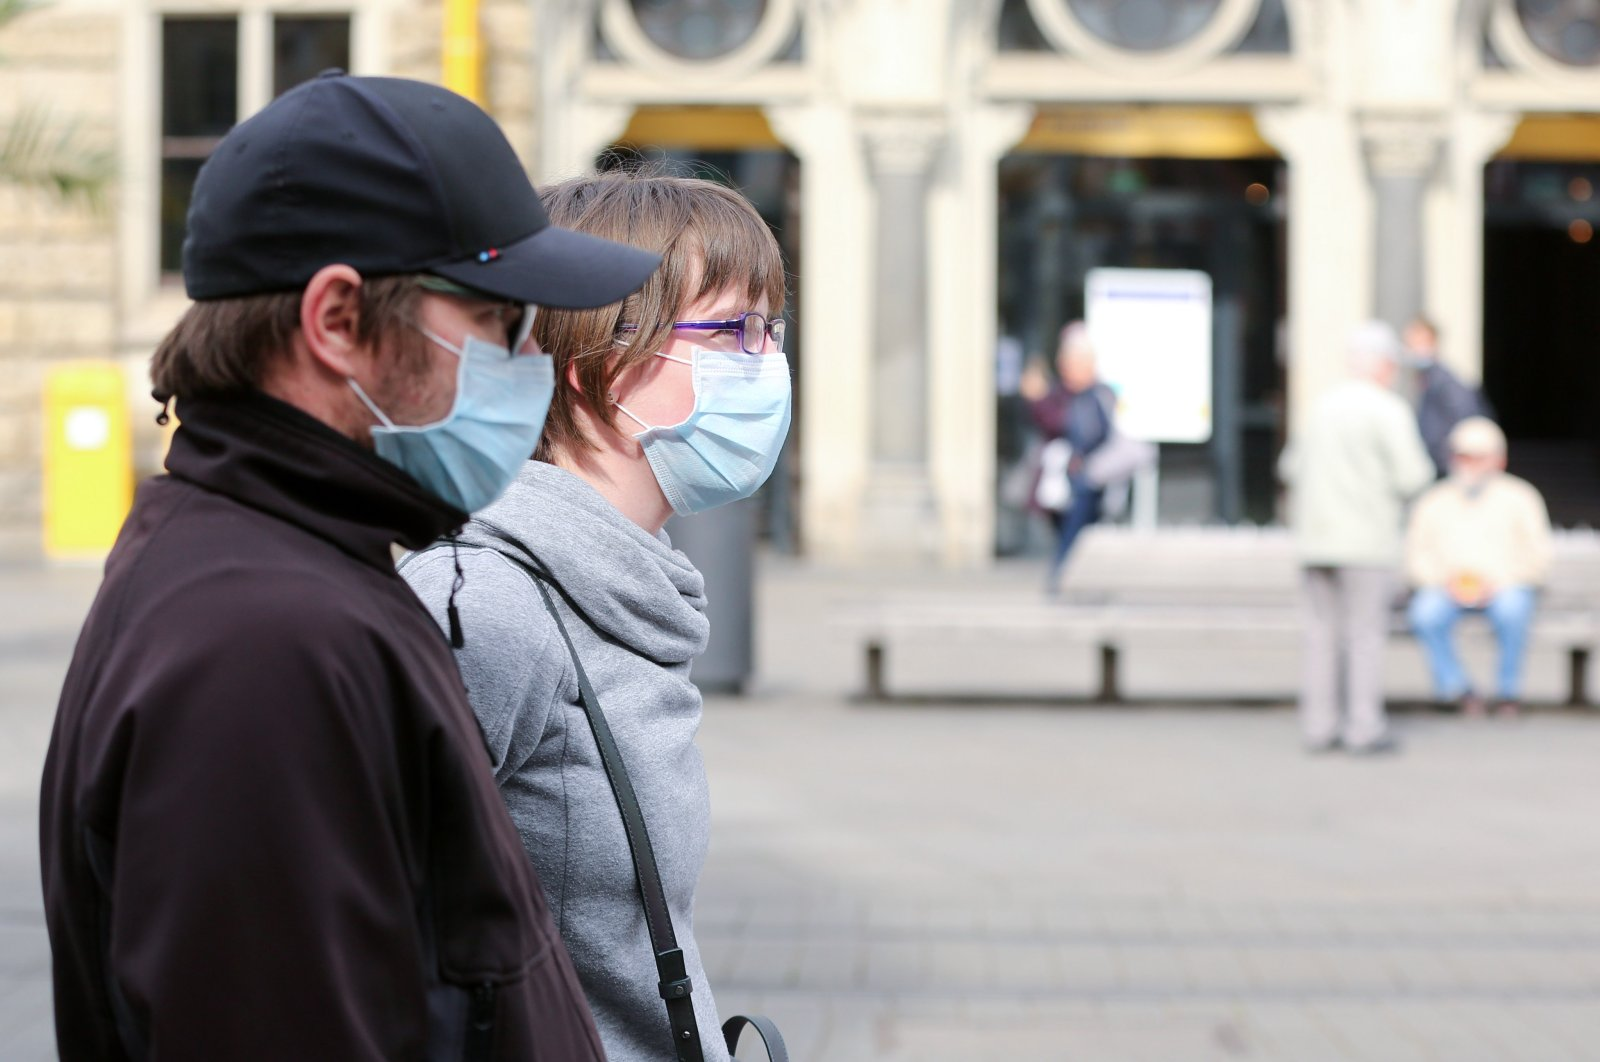 People with protective masks are seen, as the spread of the coronavirus disease (COVID-19) continues in Erfurt, Germany, April 24, 2020. (Reuters Photo)